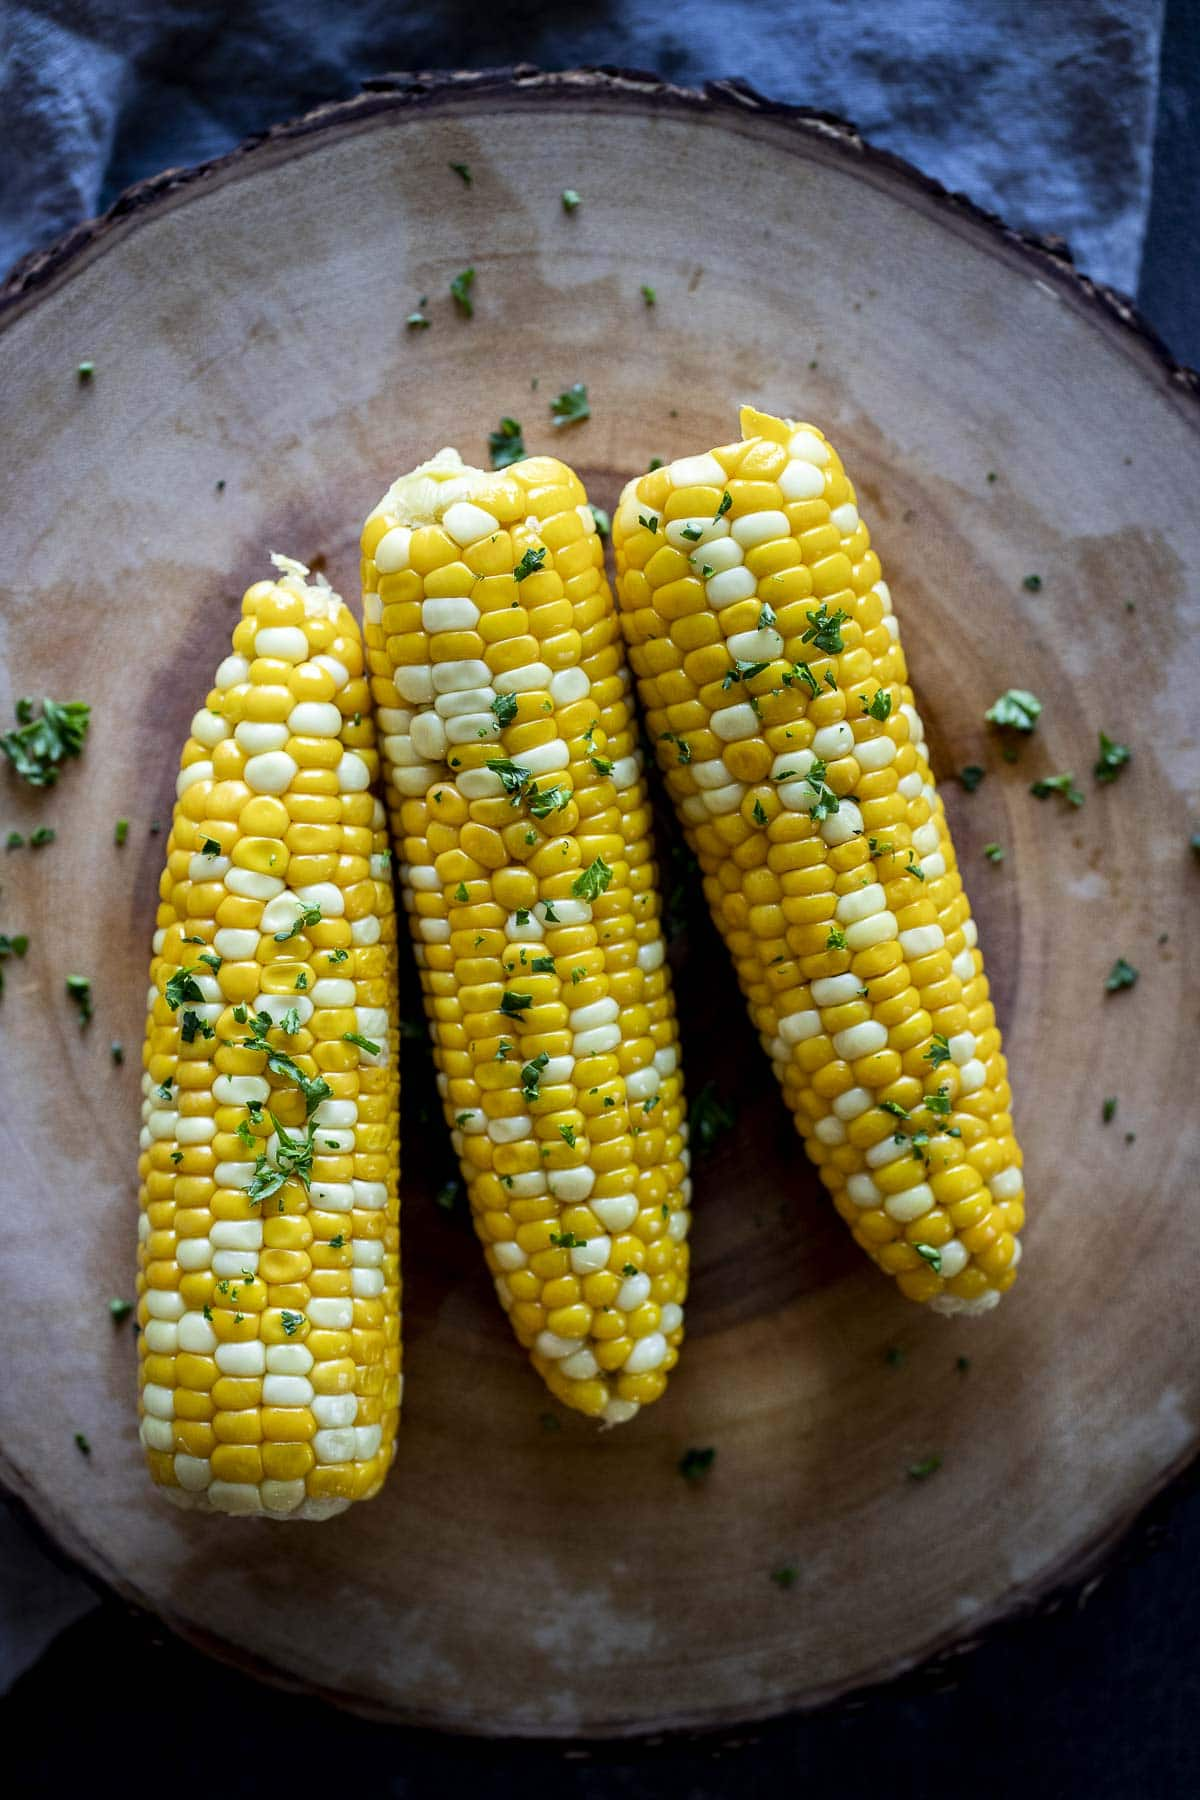 Overhead view of three ears of sous vide corn on the cob.